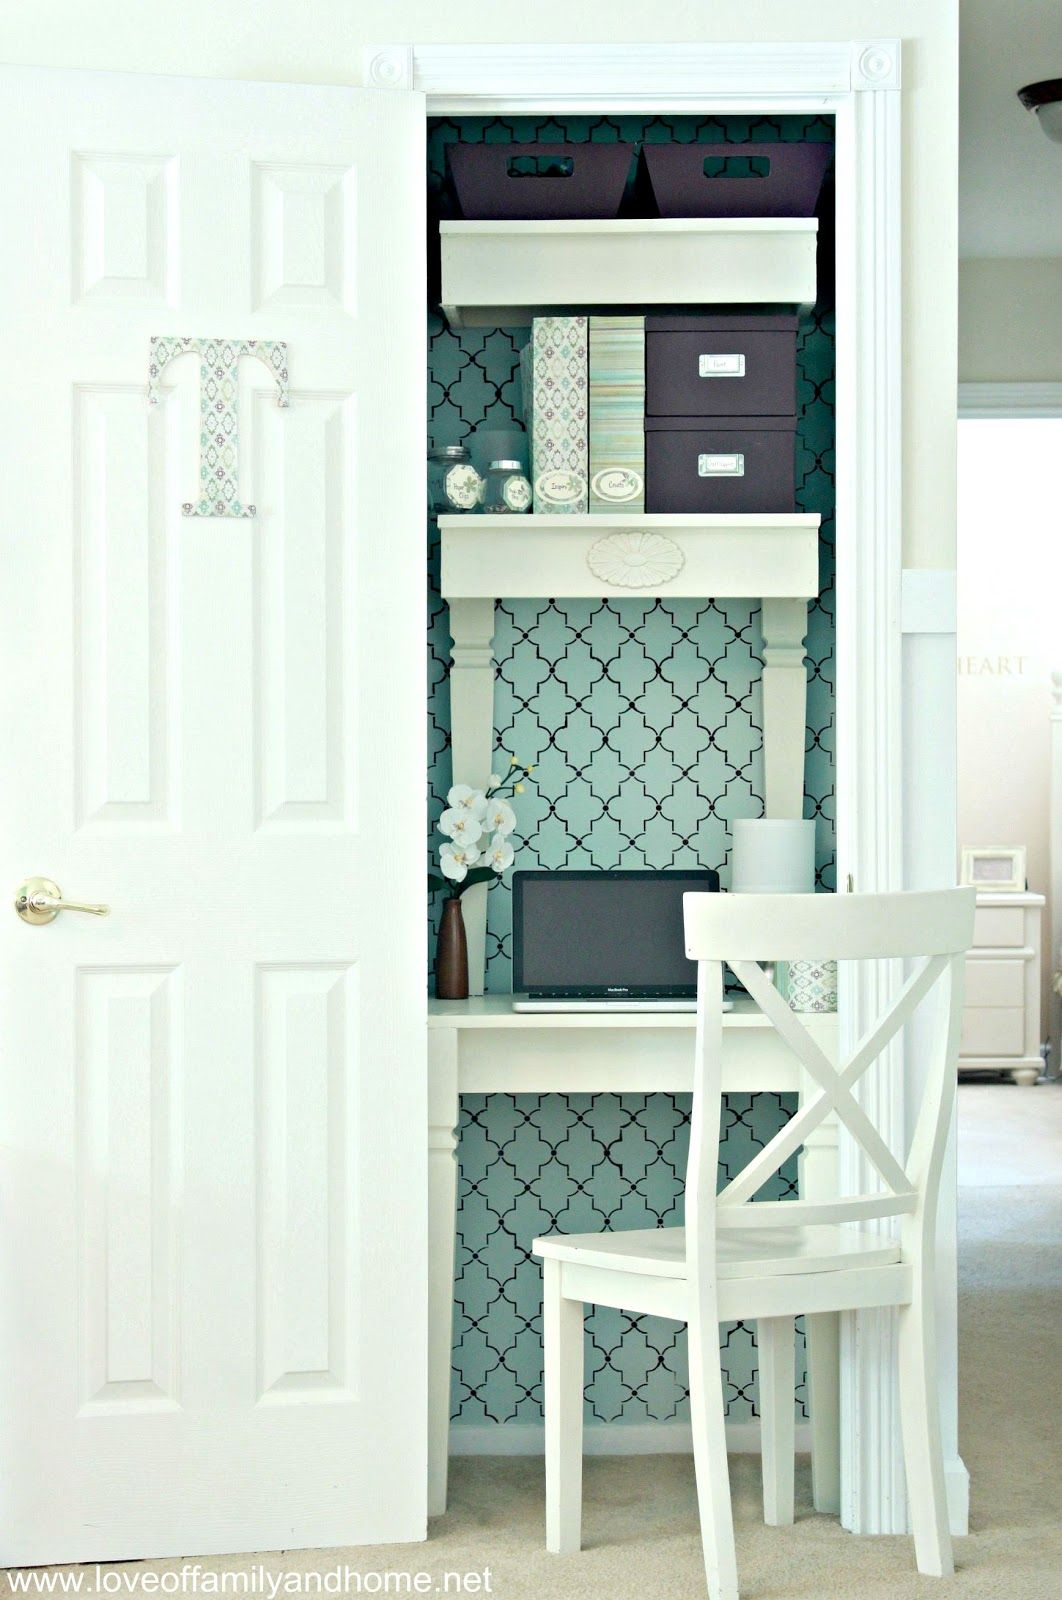 Love Of Family & Home: My Closet Turned Home Office Reveal... | 10 ...